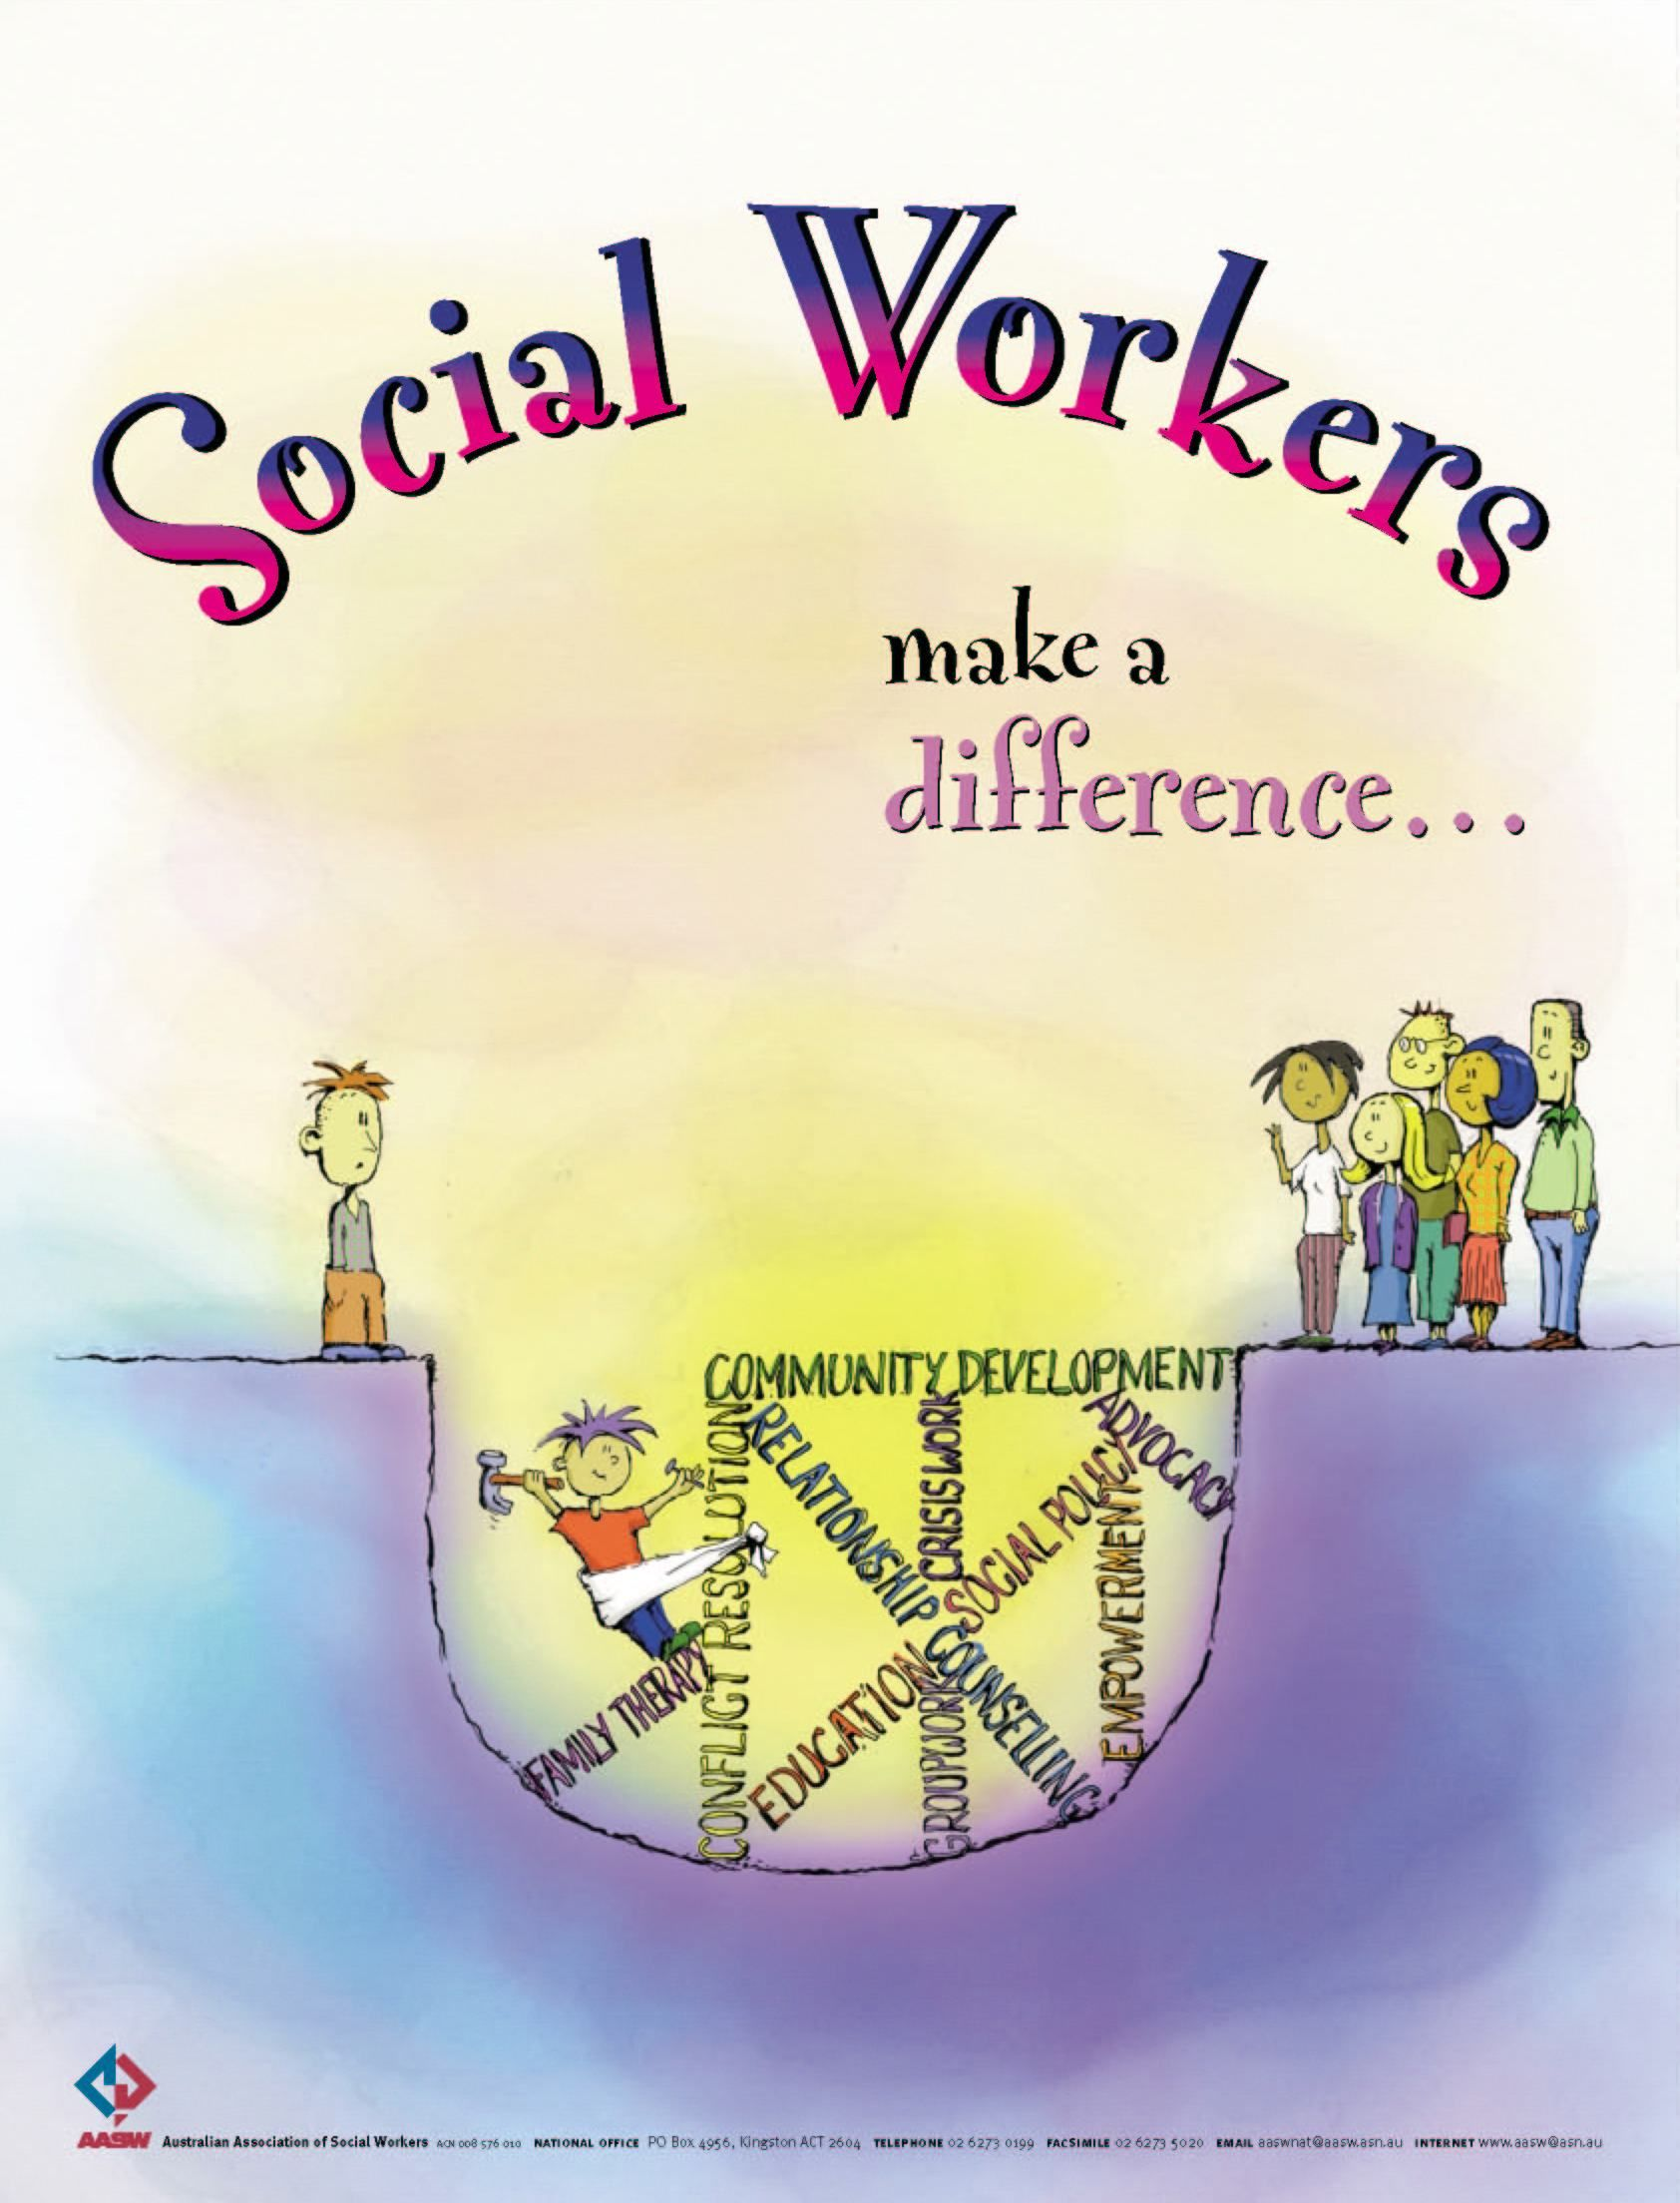 Social workers make a difference… Social work and Social